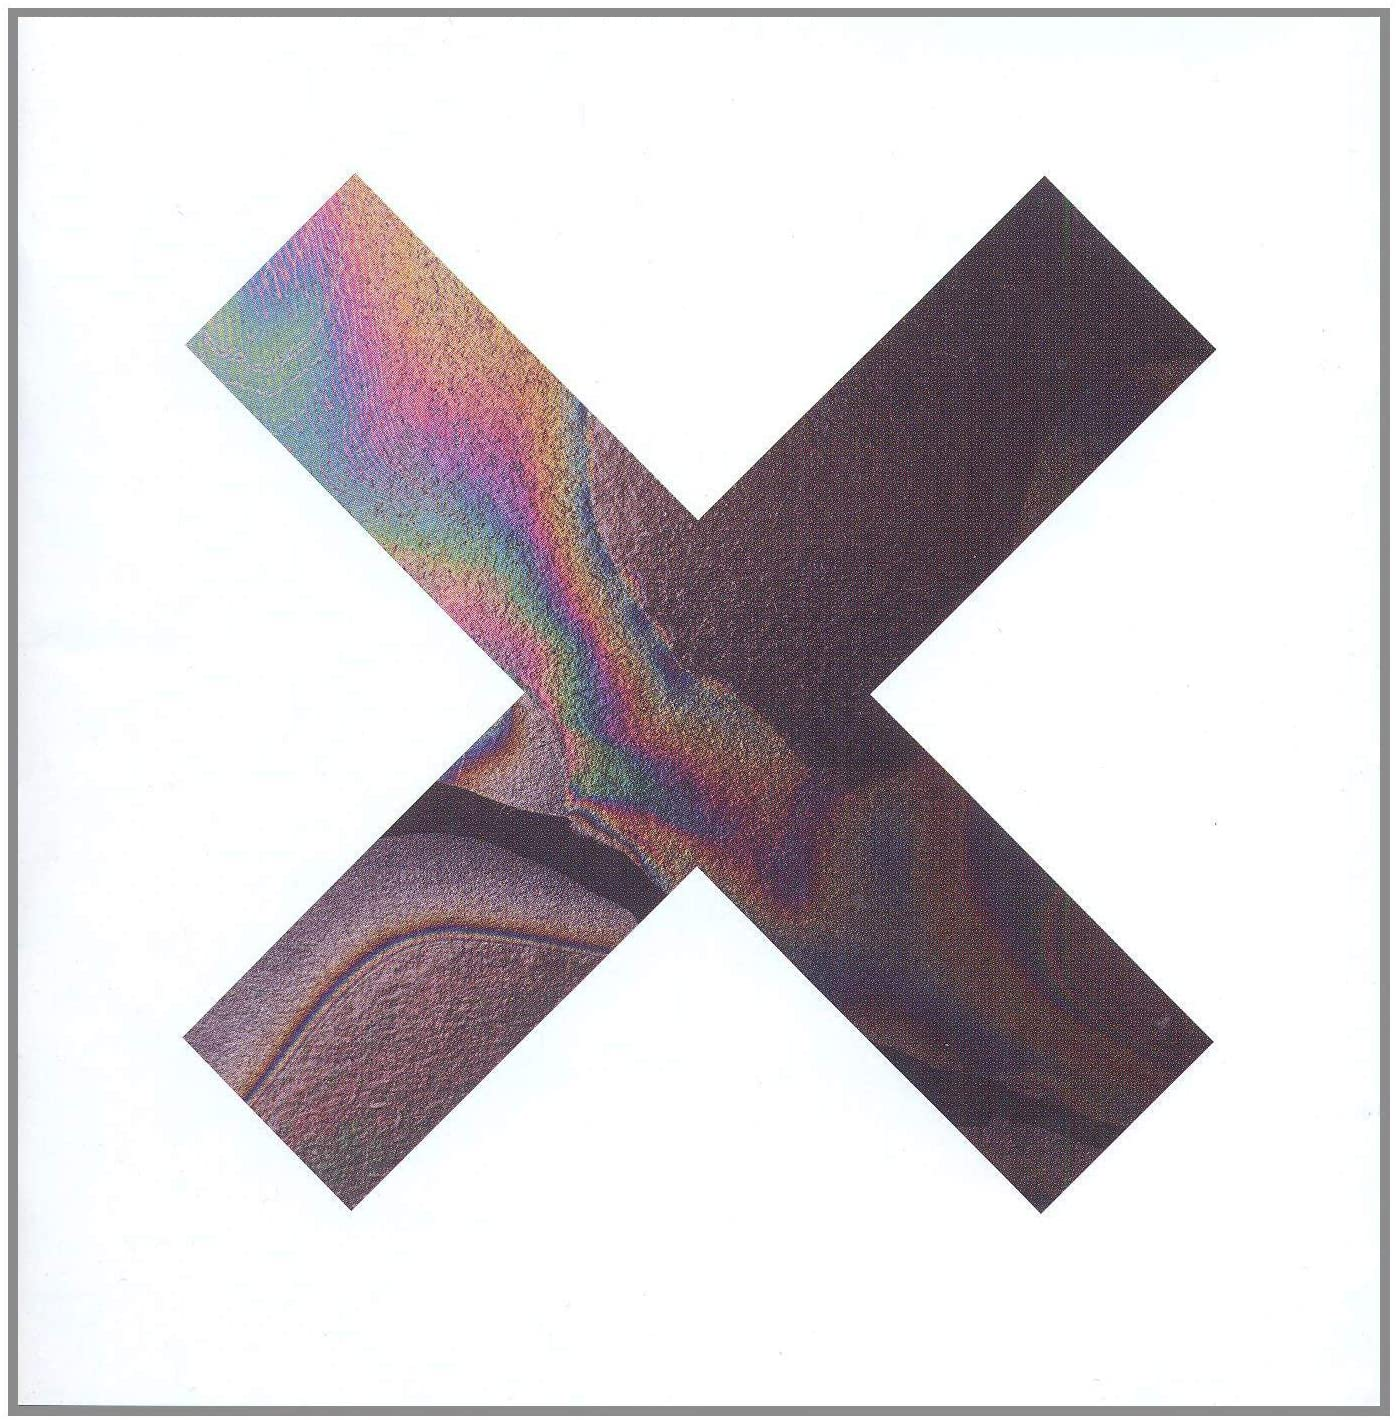 Xx, The/Coexist [LP]